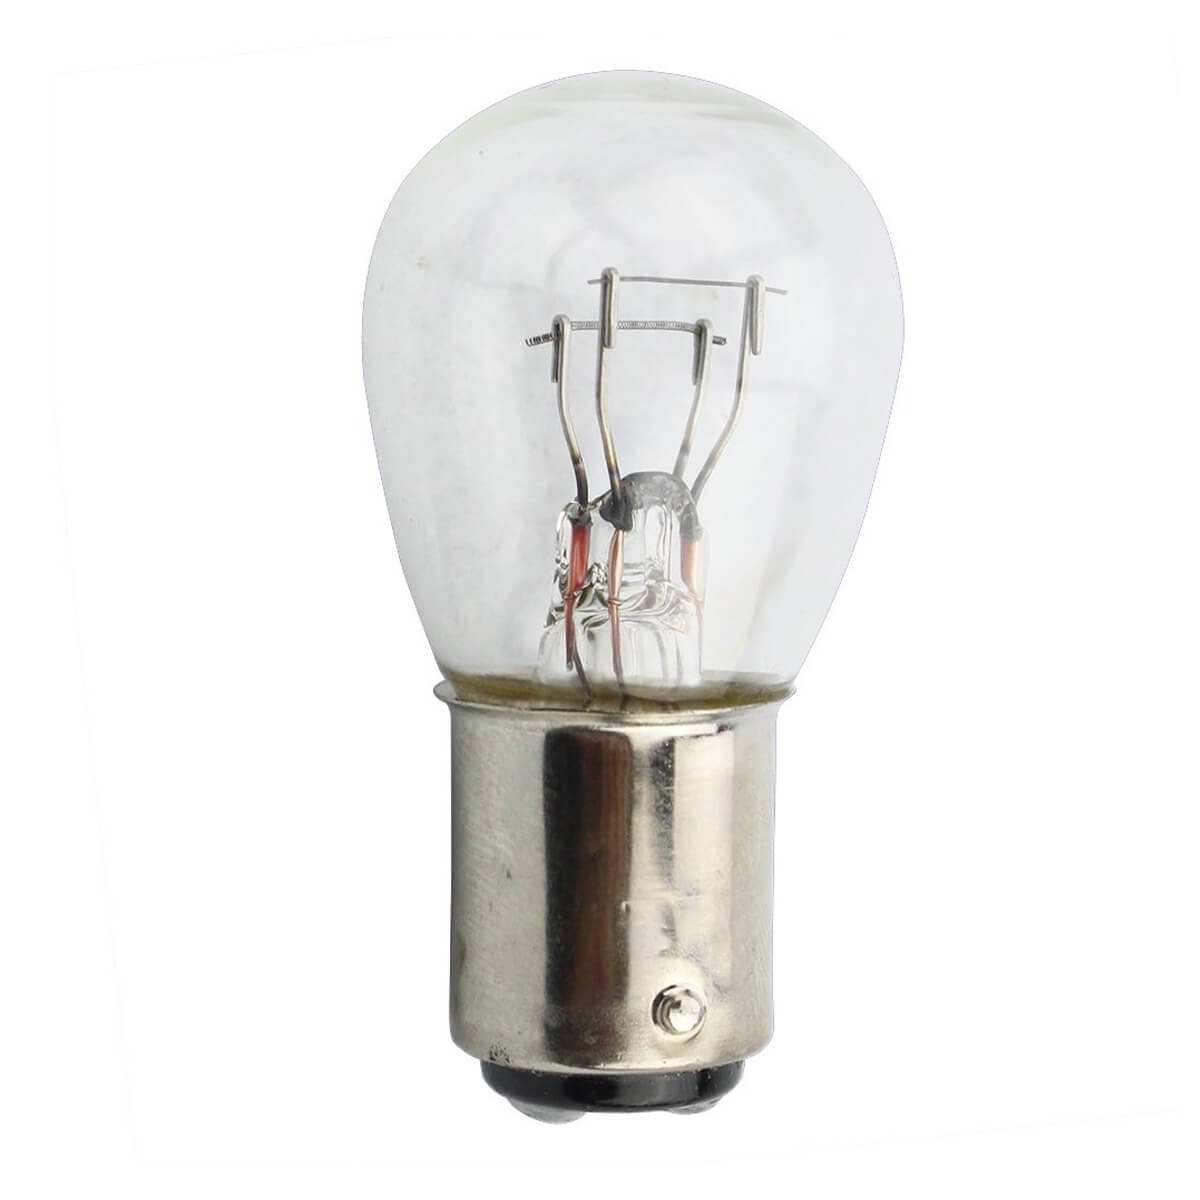 HYUNDAI H-1 Brake Light Bulb